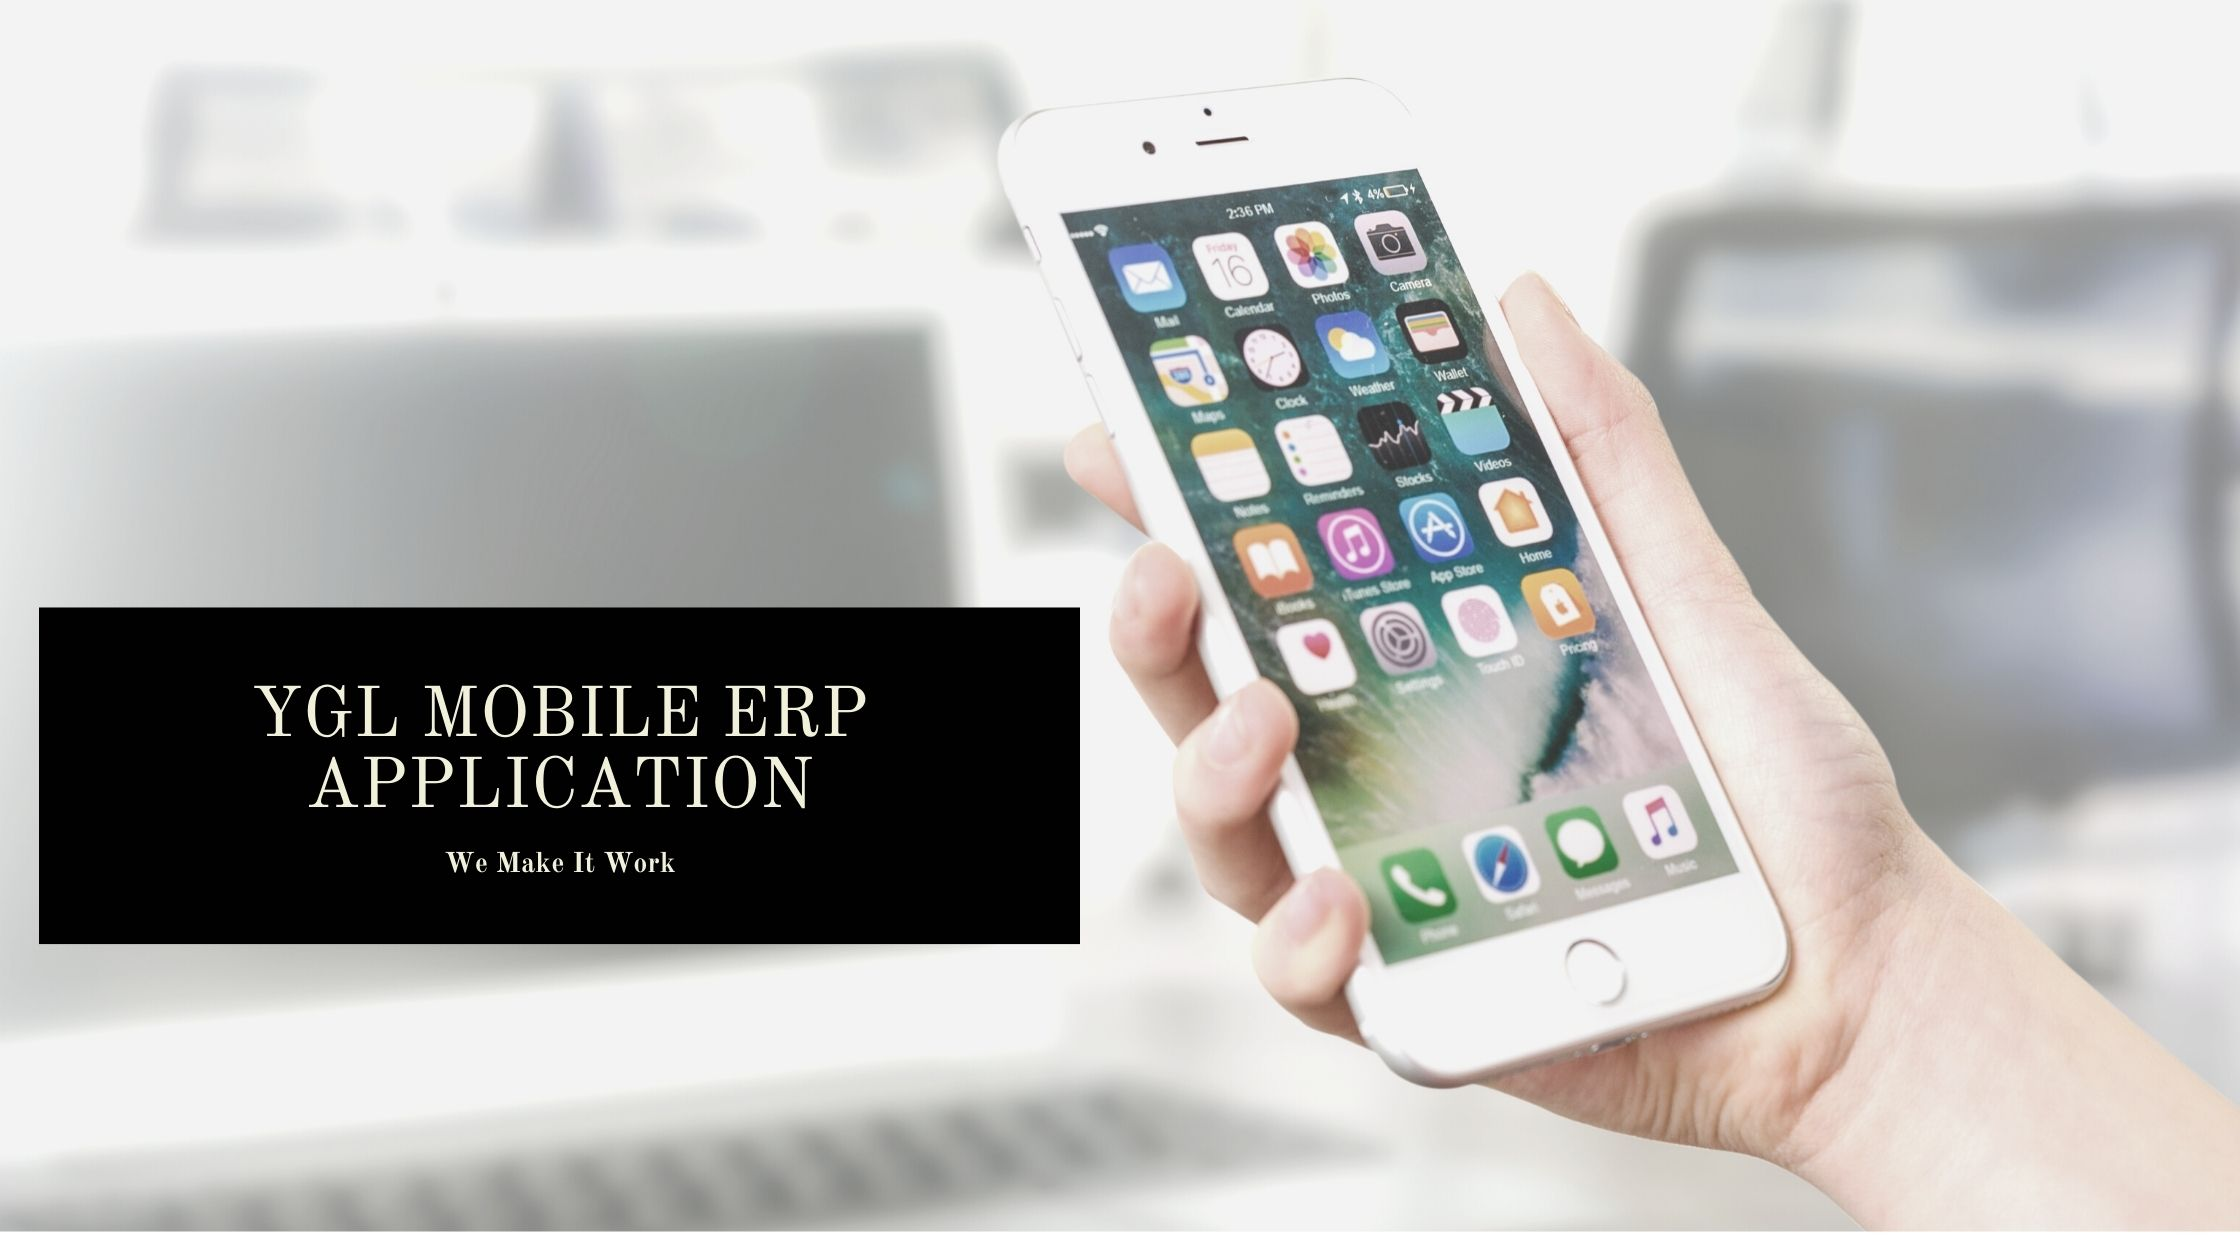 Mobile ERP | Benefits of YGL Mobile ERP